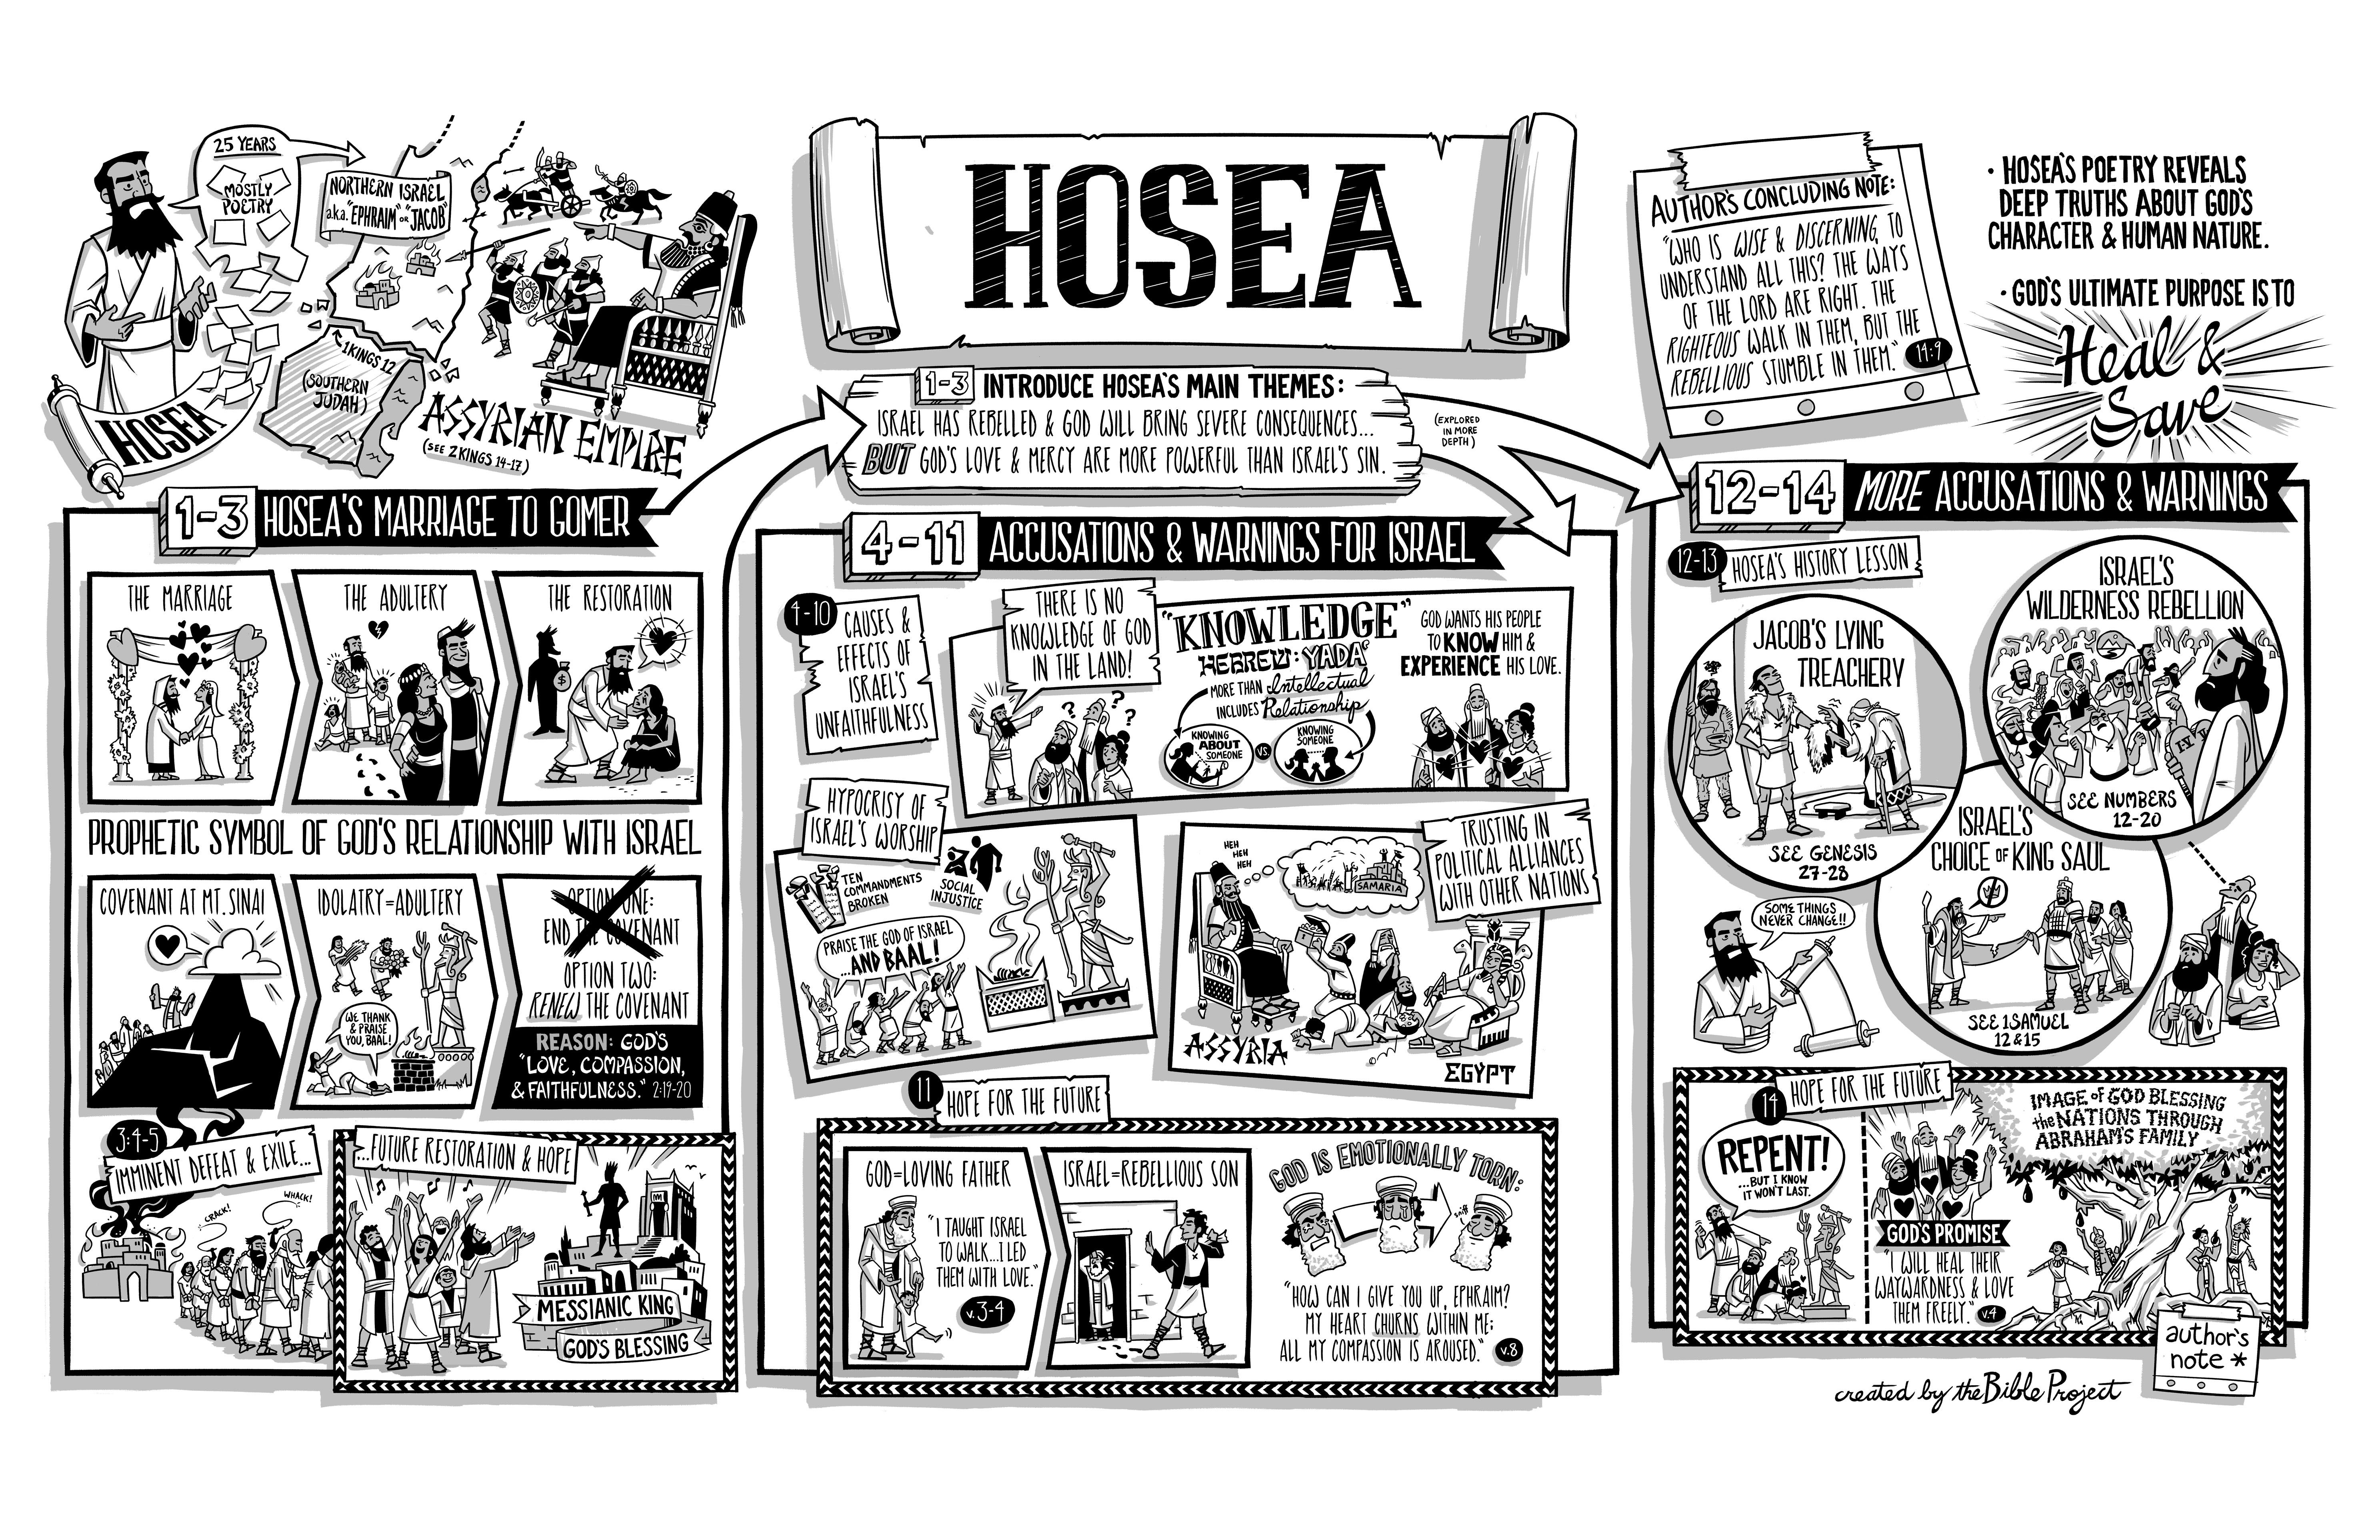 Hosea 1 - NIV Bible - The word of the LORD that came to ...